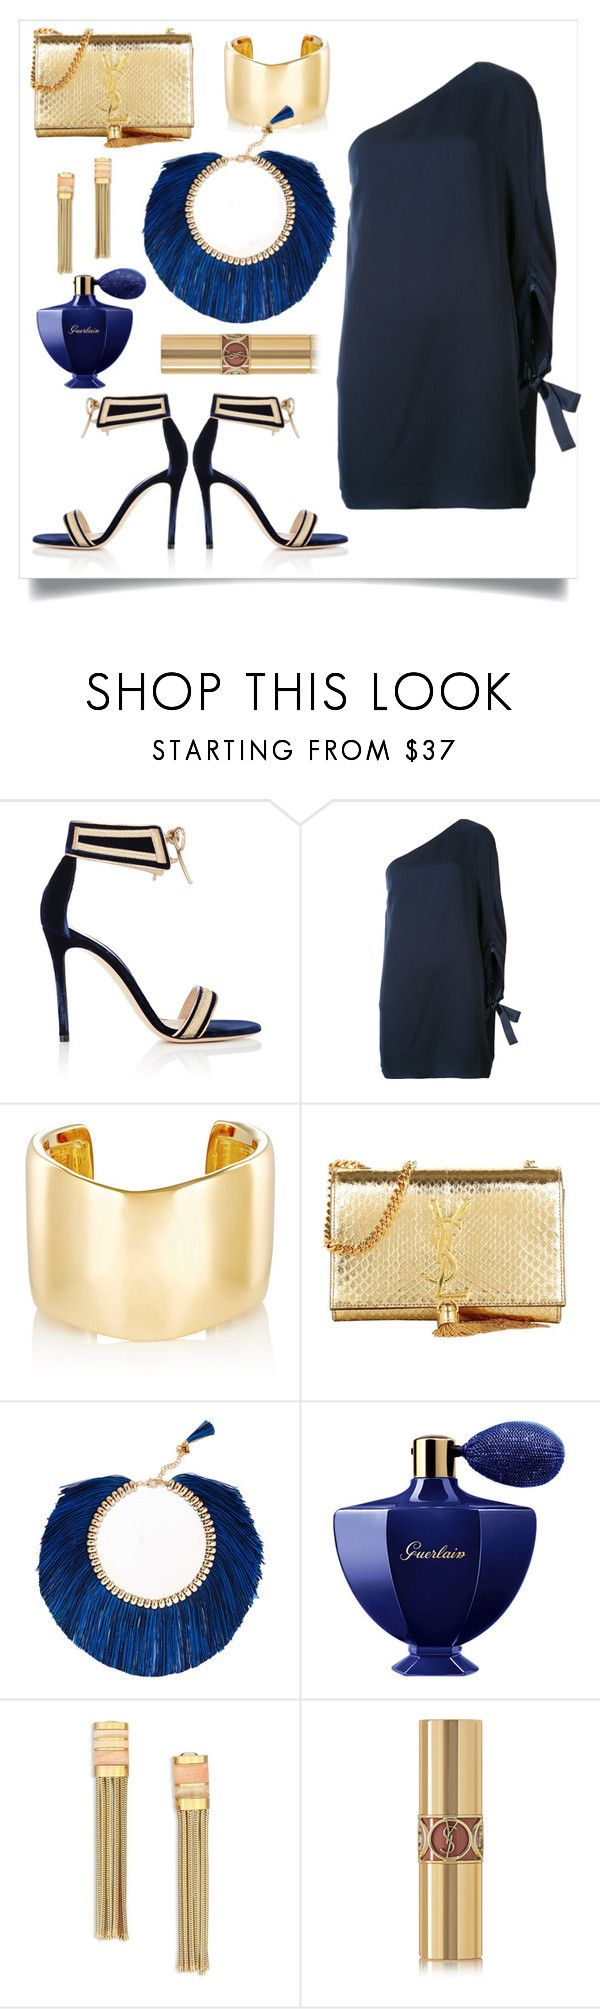 """blue..."" by slavulienka on Polyvore featuring Gianvito Rossi, Halston Heritage, Jennifer Fisher, Yves Saint Laurent, Rosantica, Guerlain and Lanvin"